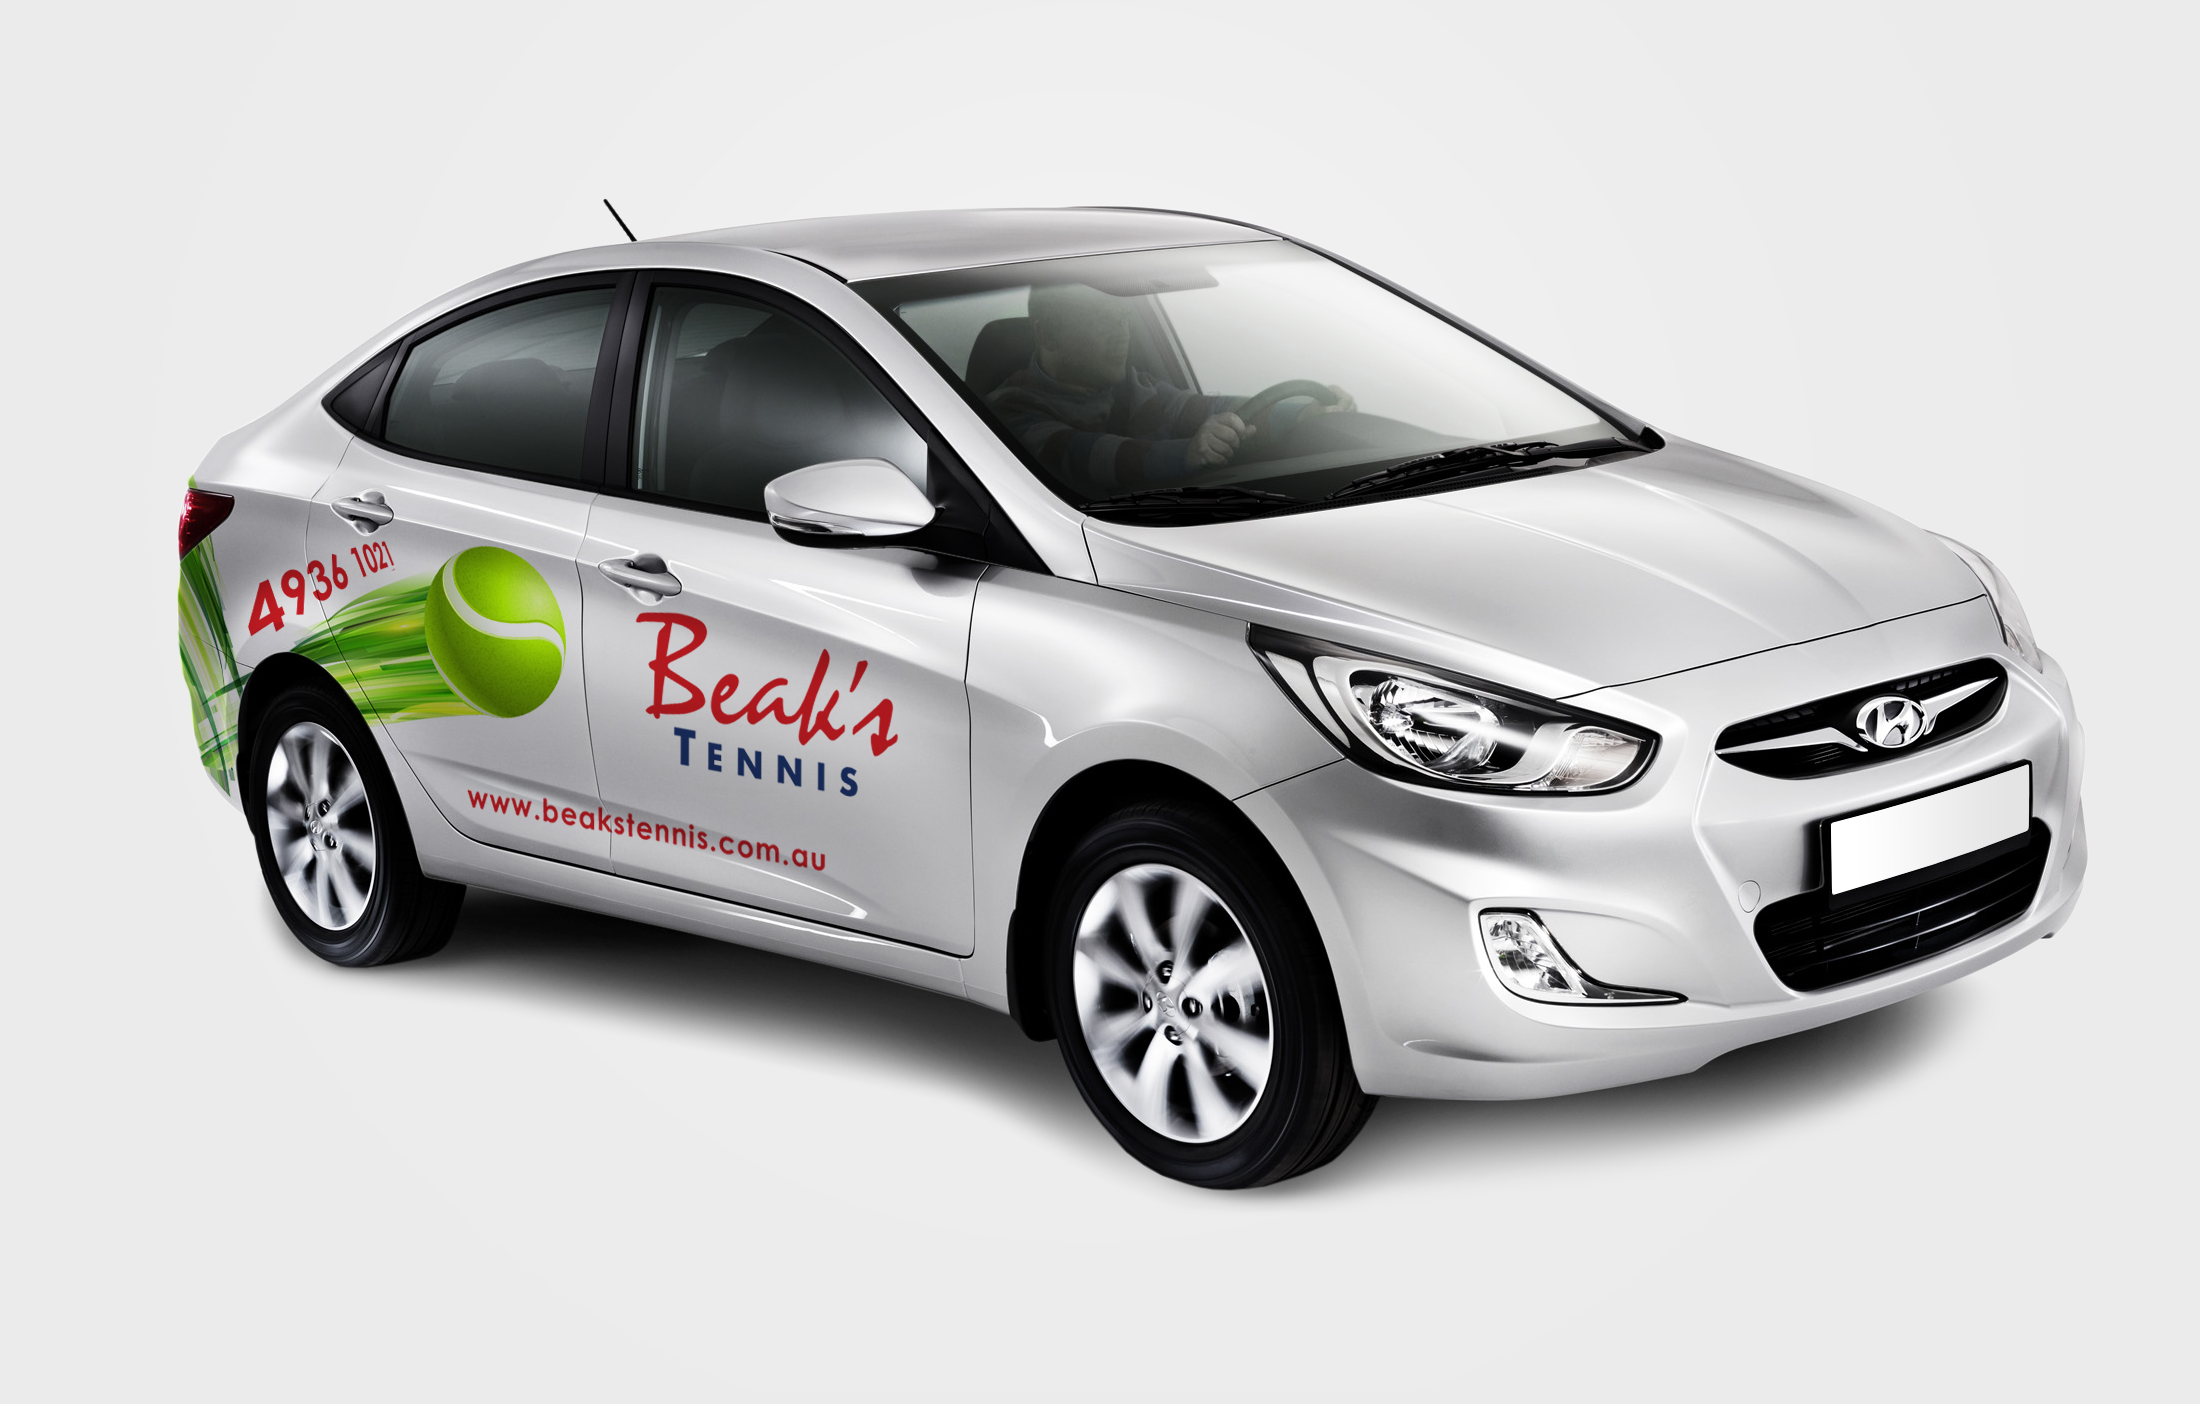 APAP Events Event Management and Graphic Design Rockhampton Beaks Tennis Car Graphics